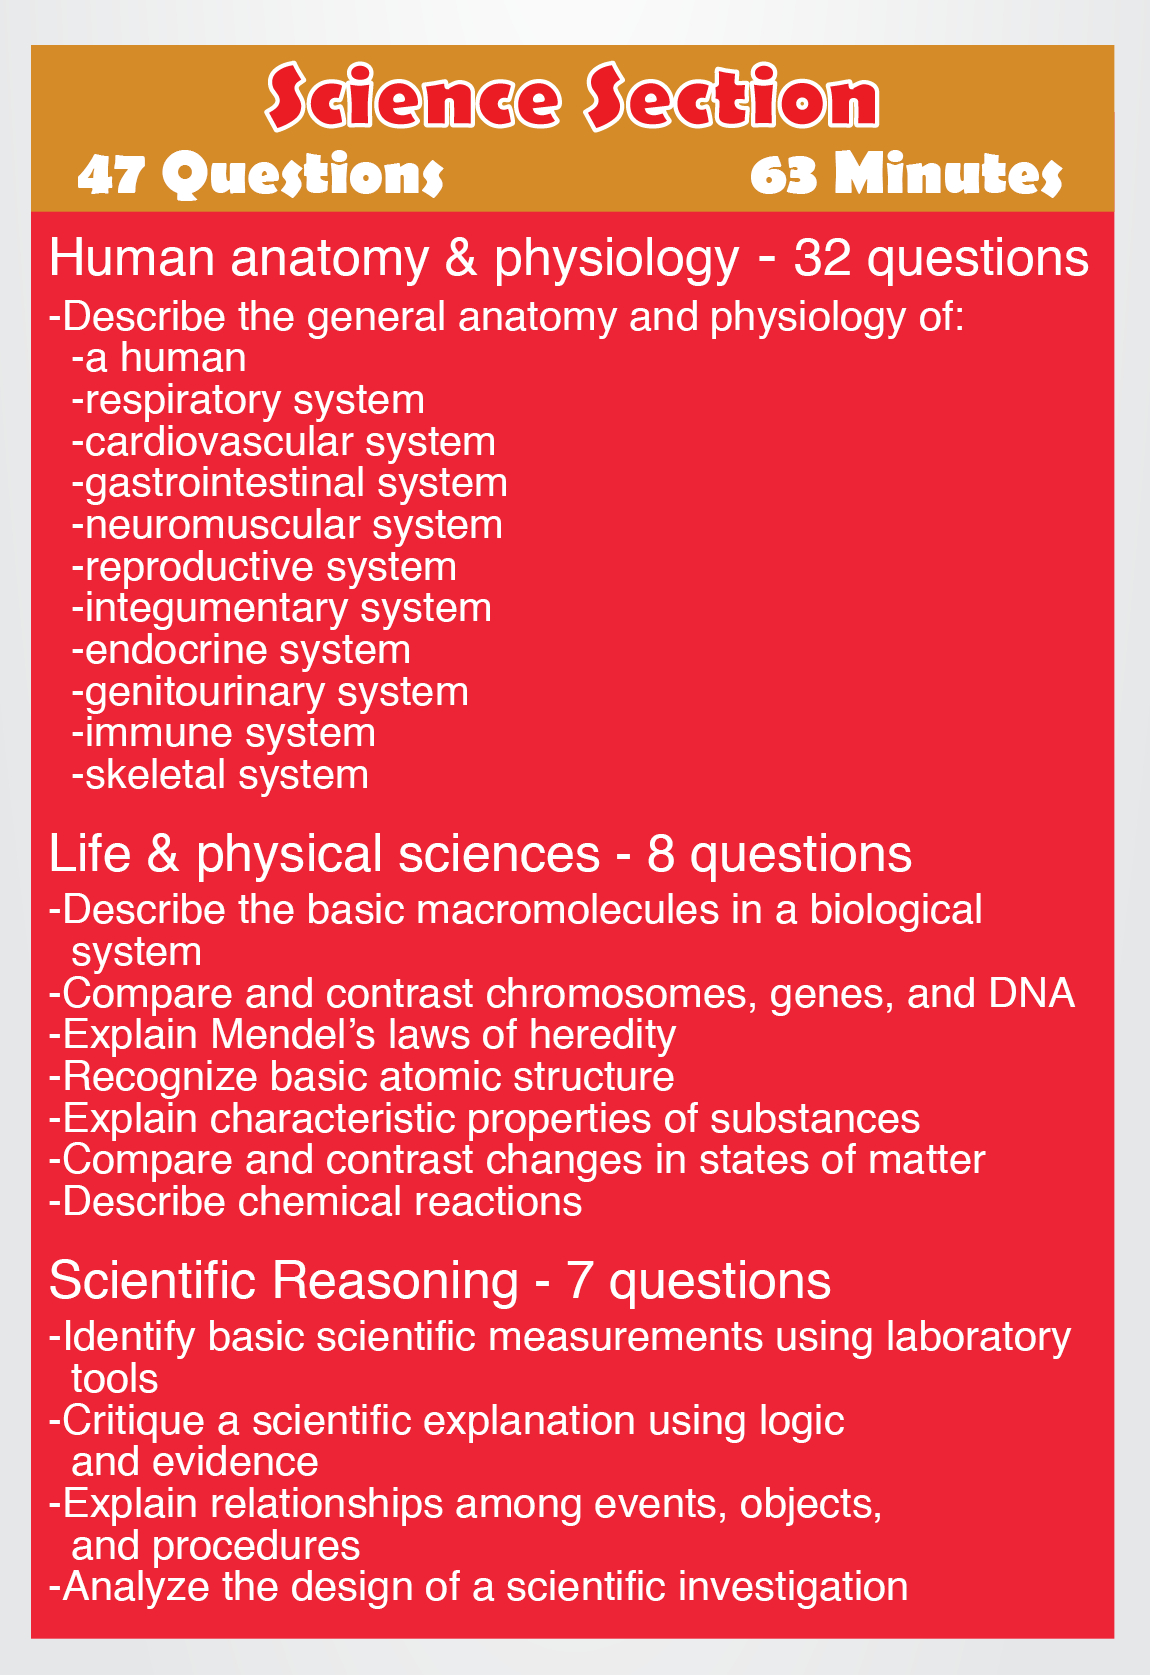 Teas Science - Content Areas Such As The Following: Human Anatomy - Free Printable Teas Practice Test